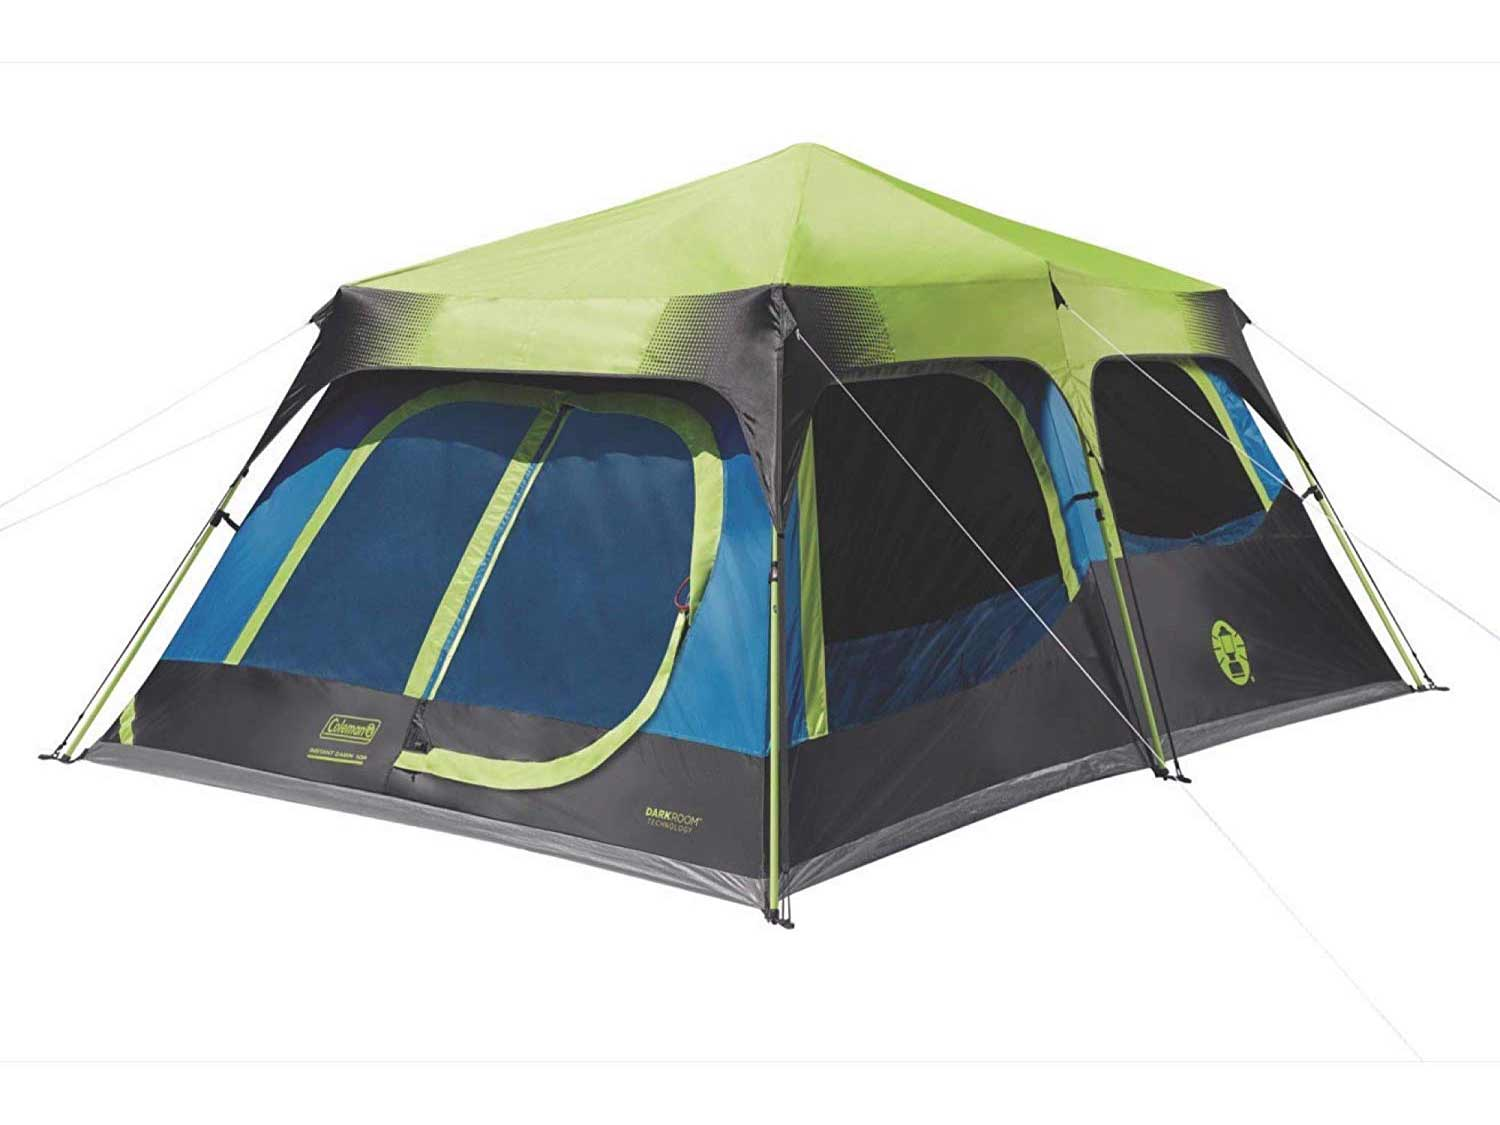 3 Things to Consider Before Buying Your Next Family Tent